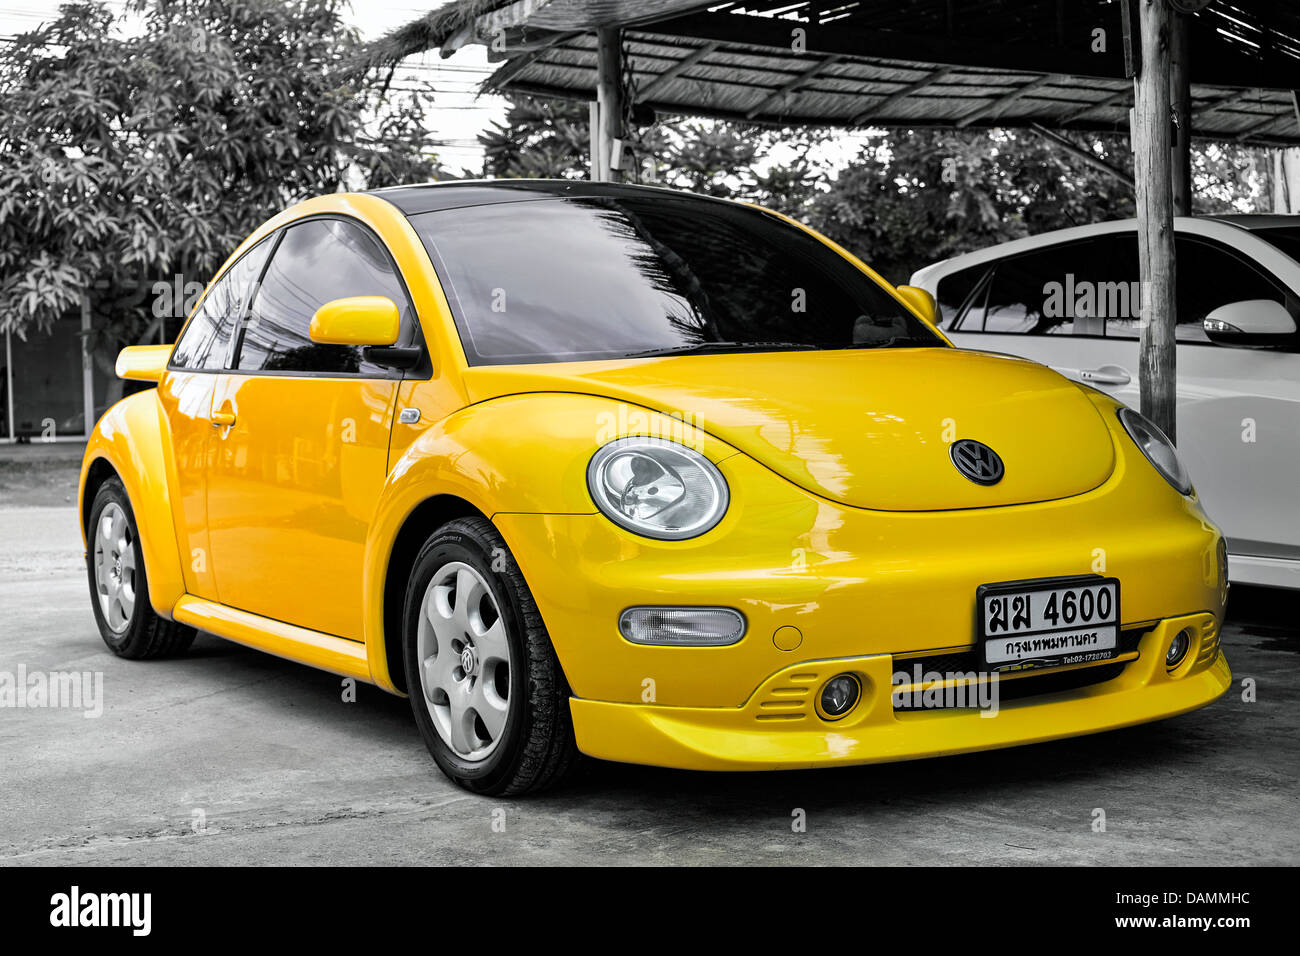 vivid yellow modern volkswagen vw beetle motorcar thailand s e stock photo royalty free image. Black Bedroom Furniture Sets. Home Design Ideas